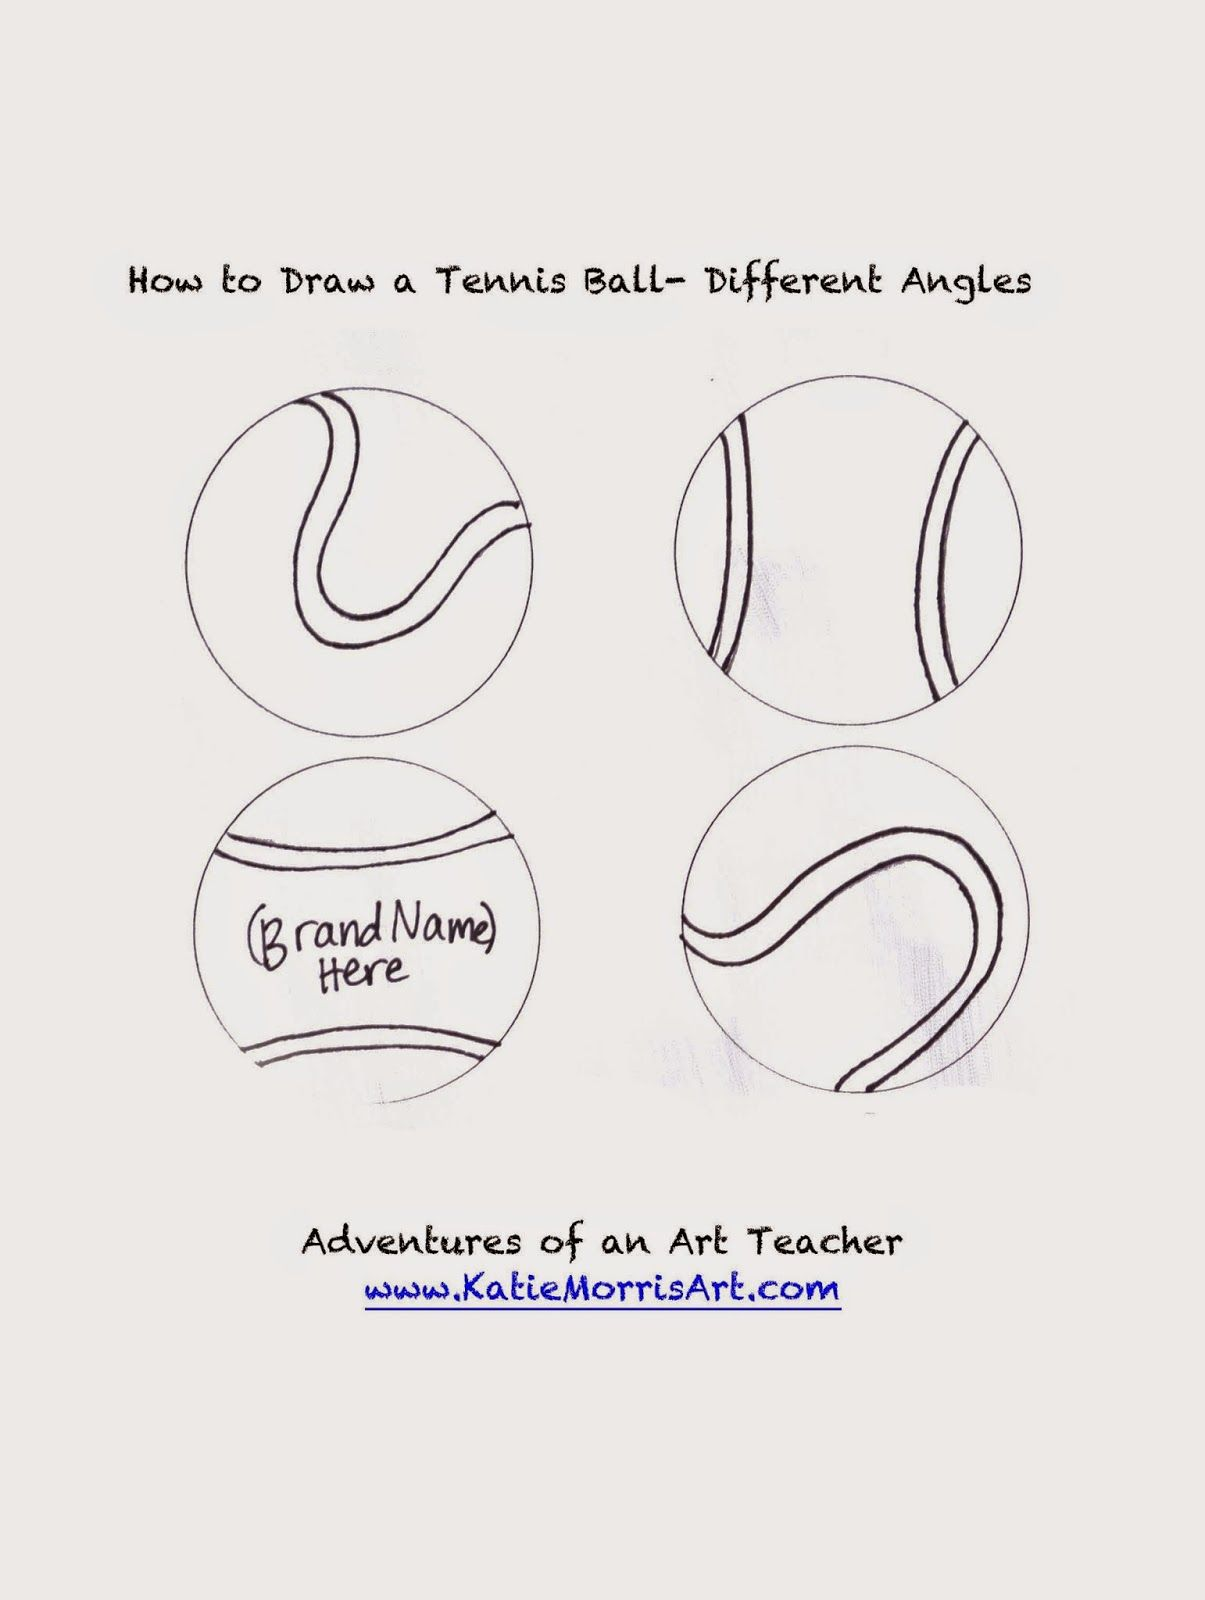 Adventures Of An Art Teacher How To Draw Sports Tennis Ball